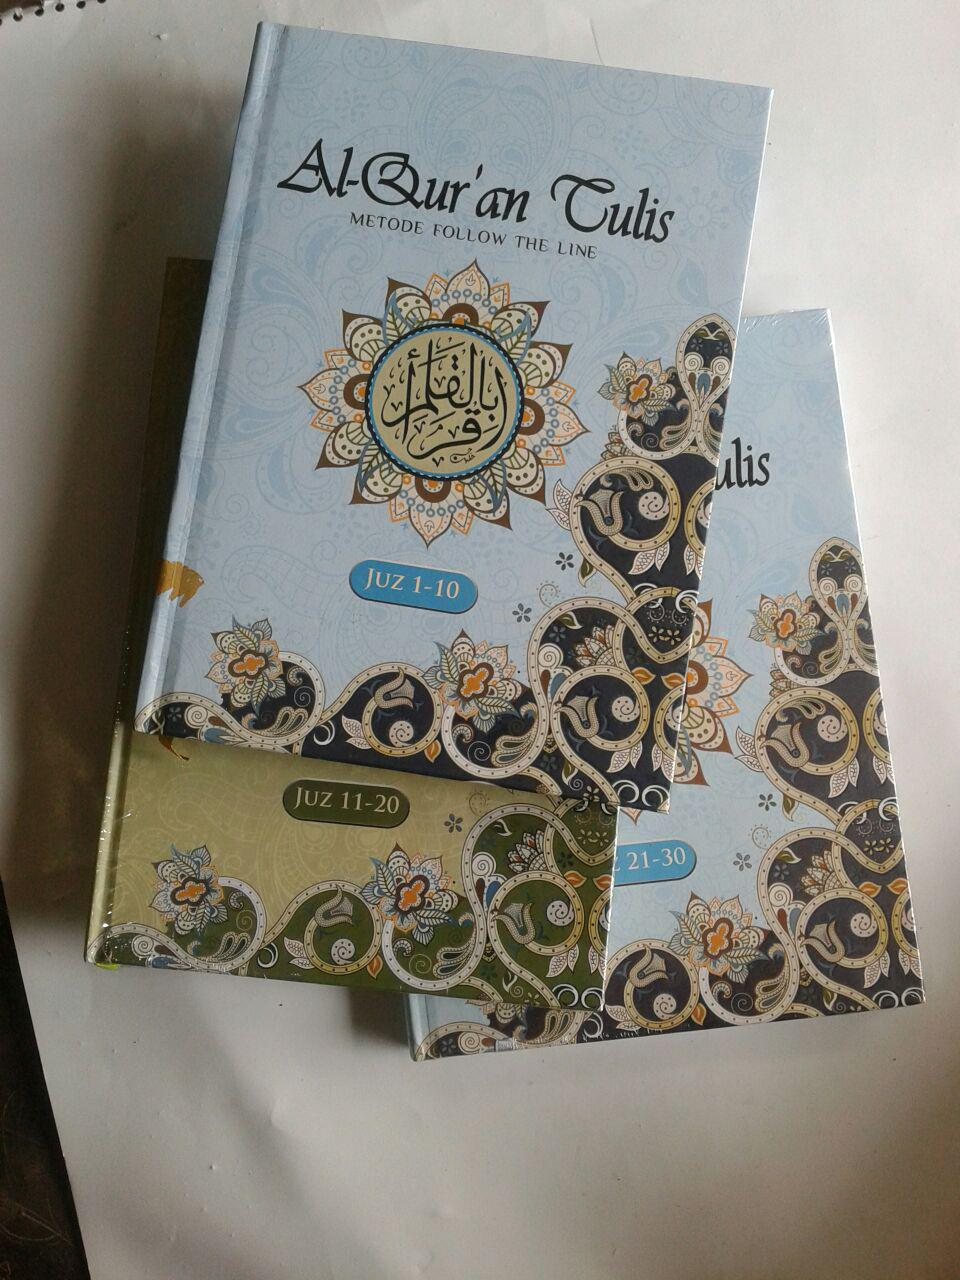 Al-Qur'an Tulis Metode Follow The Line 1 Set 3 Jilid cover 3